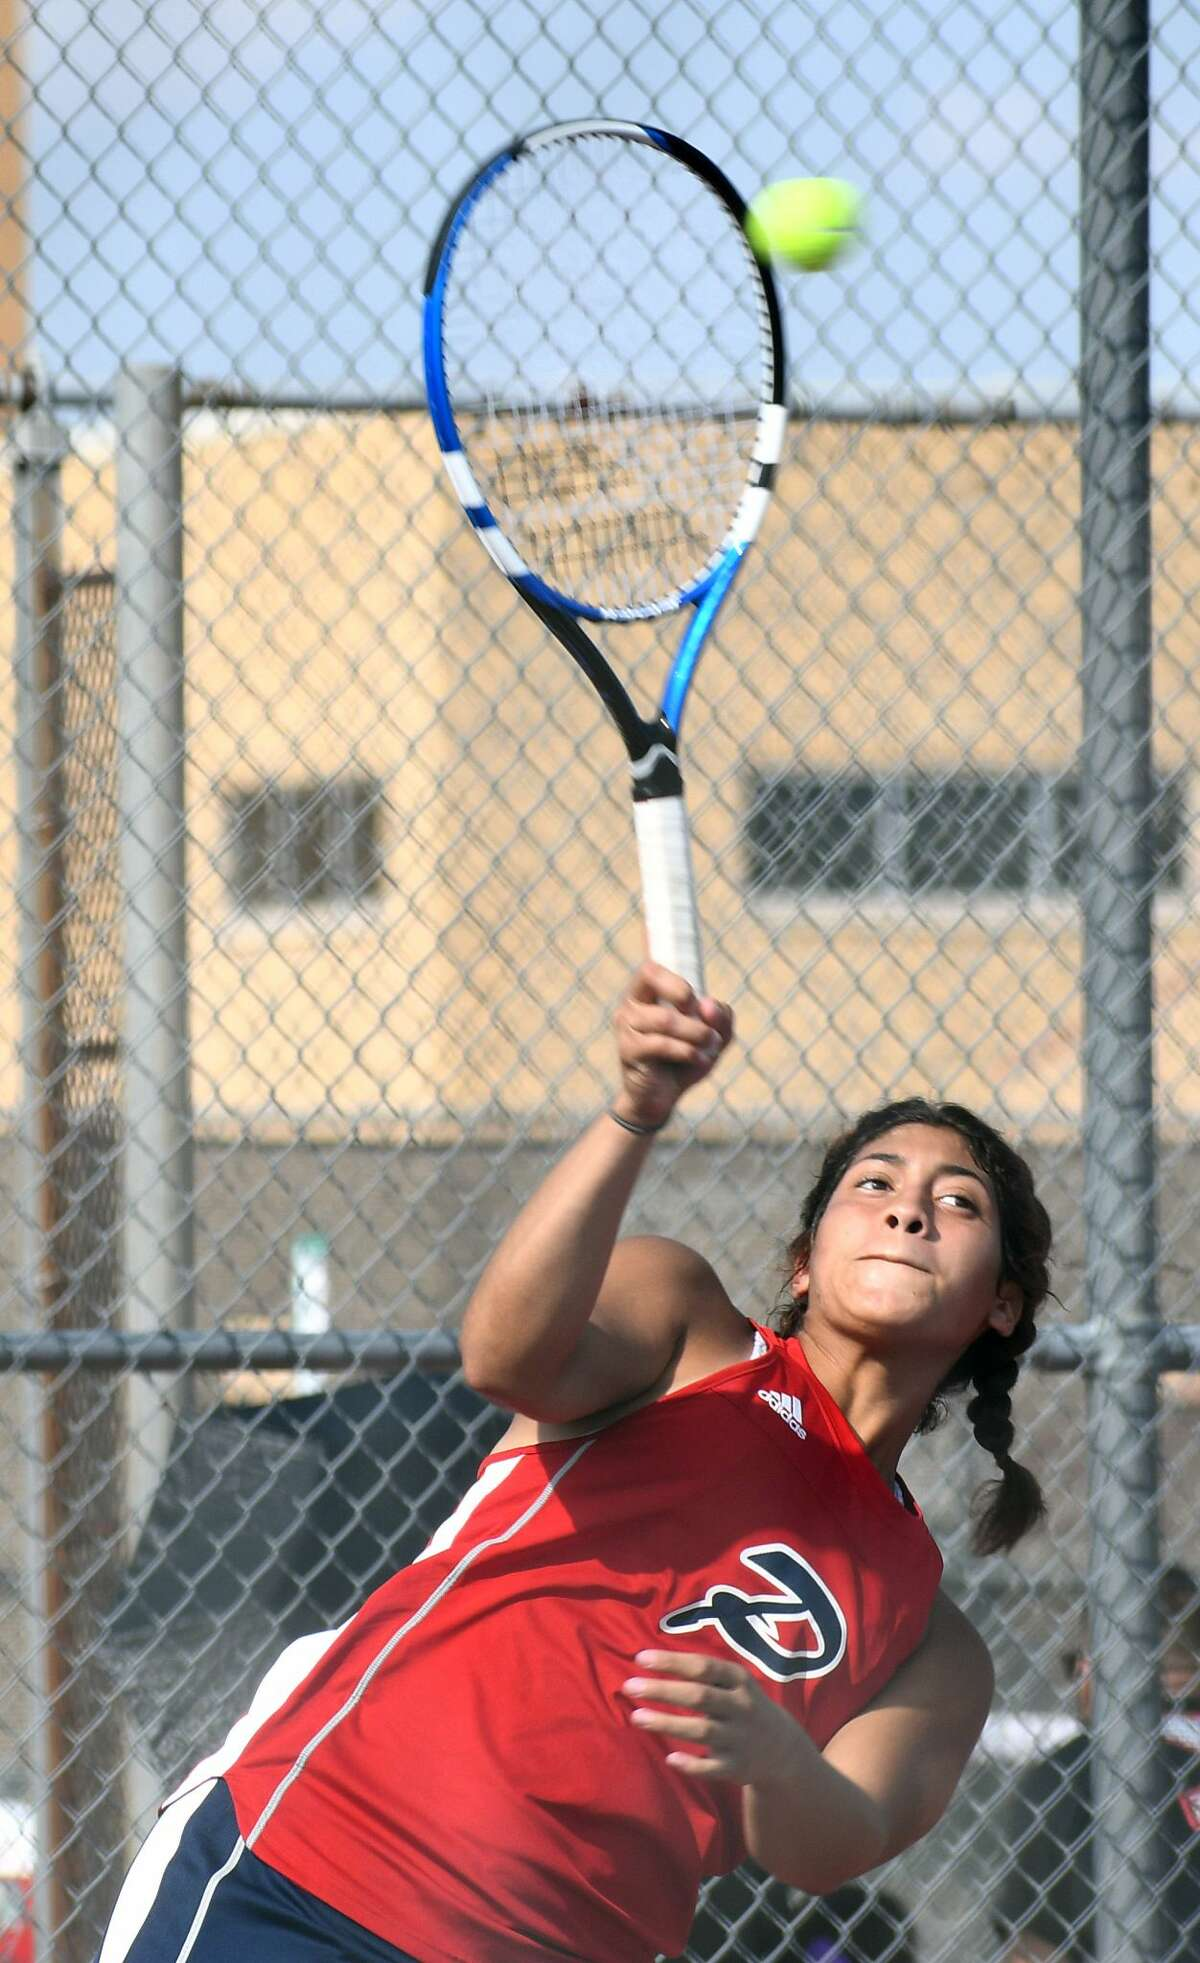 Plainview's tennis team hosted Amarillo Palo Duro in a dual on Tuesday, Sept. 15, 2020 at Plainview High School.